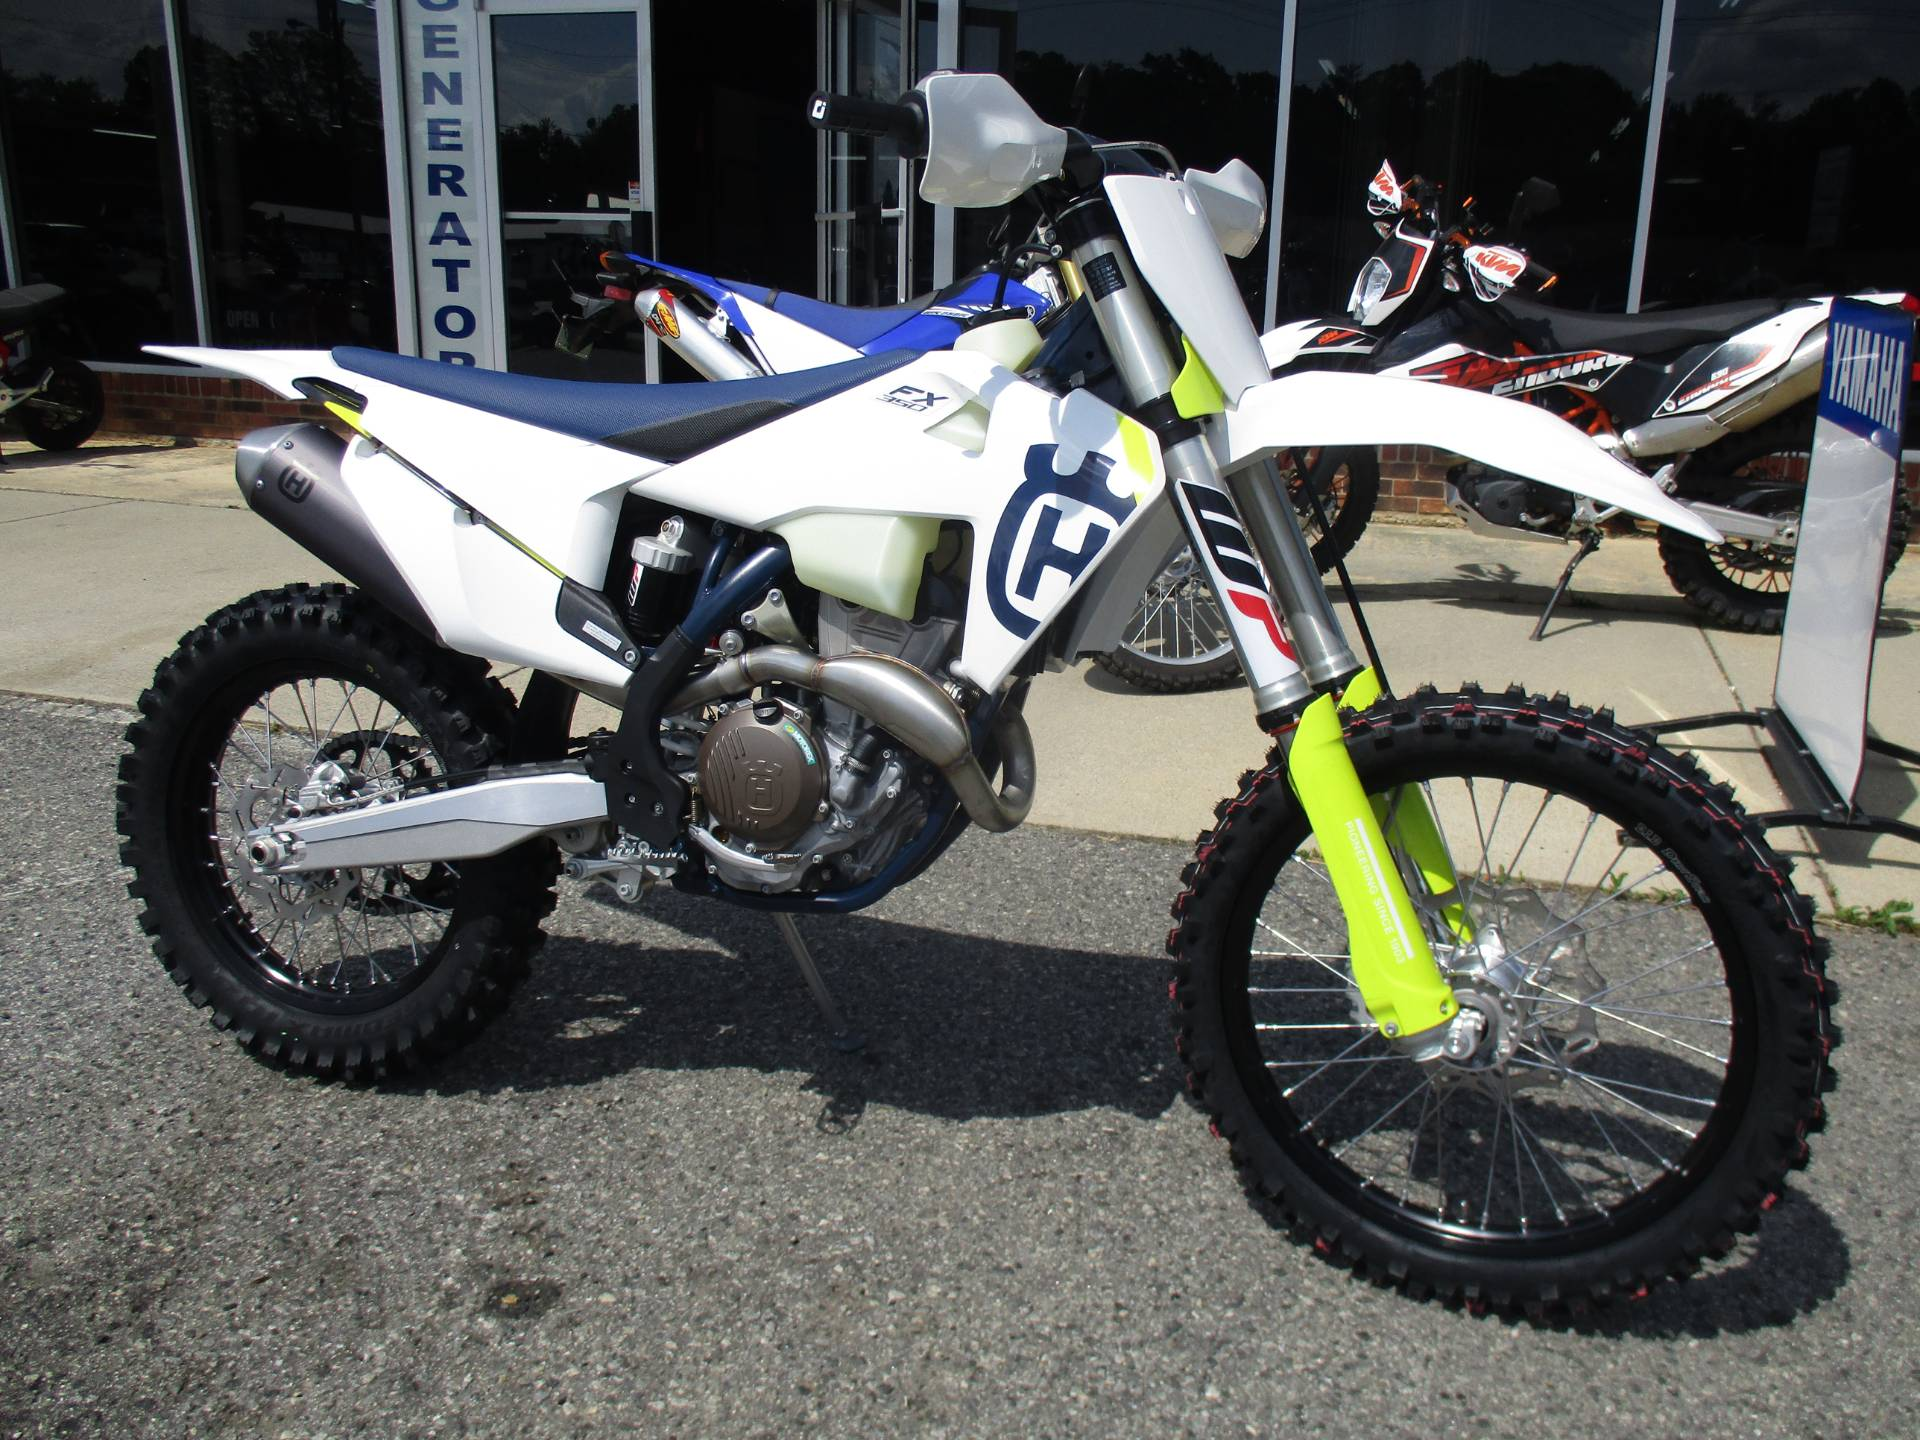 2019 Husqvarna FX 350 in Hendersonville, North Carolina - Photo 1